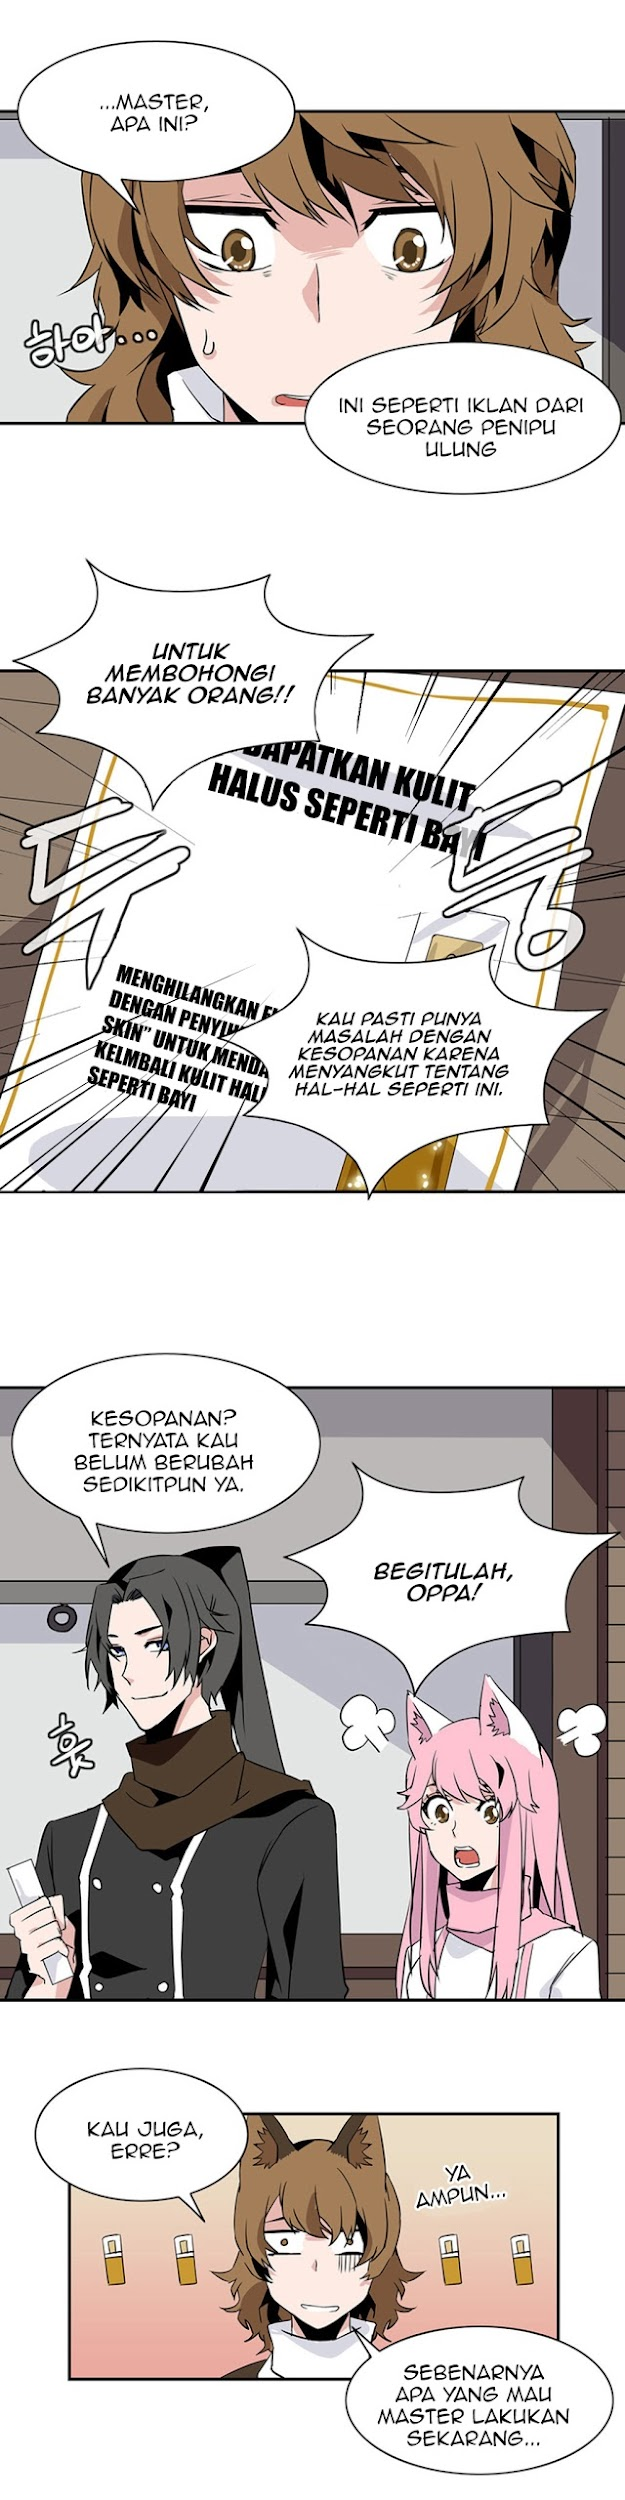 Dilarang COPAS - situs resmi www.mangacanblog.com - Komik wizardly tower 030 - chapter 30 31 Indonesia wizardly tower 030 - chapter 30 Terbaru 1|Baca Manga Komik Indonesia|Mangacan